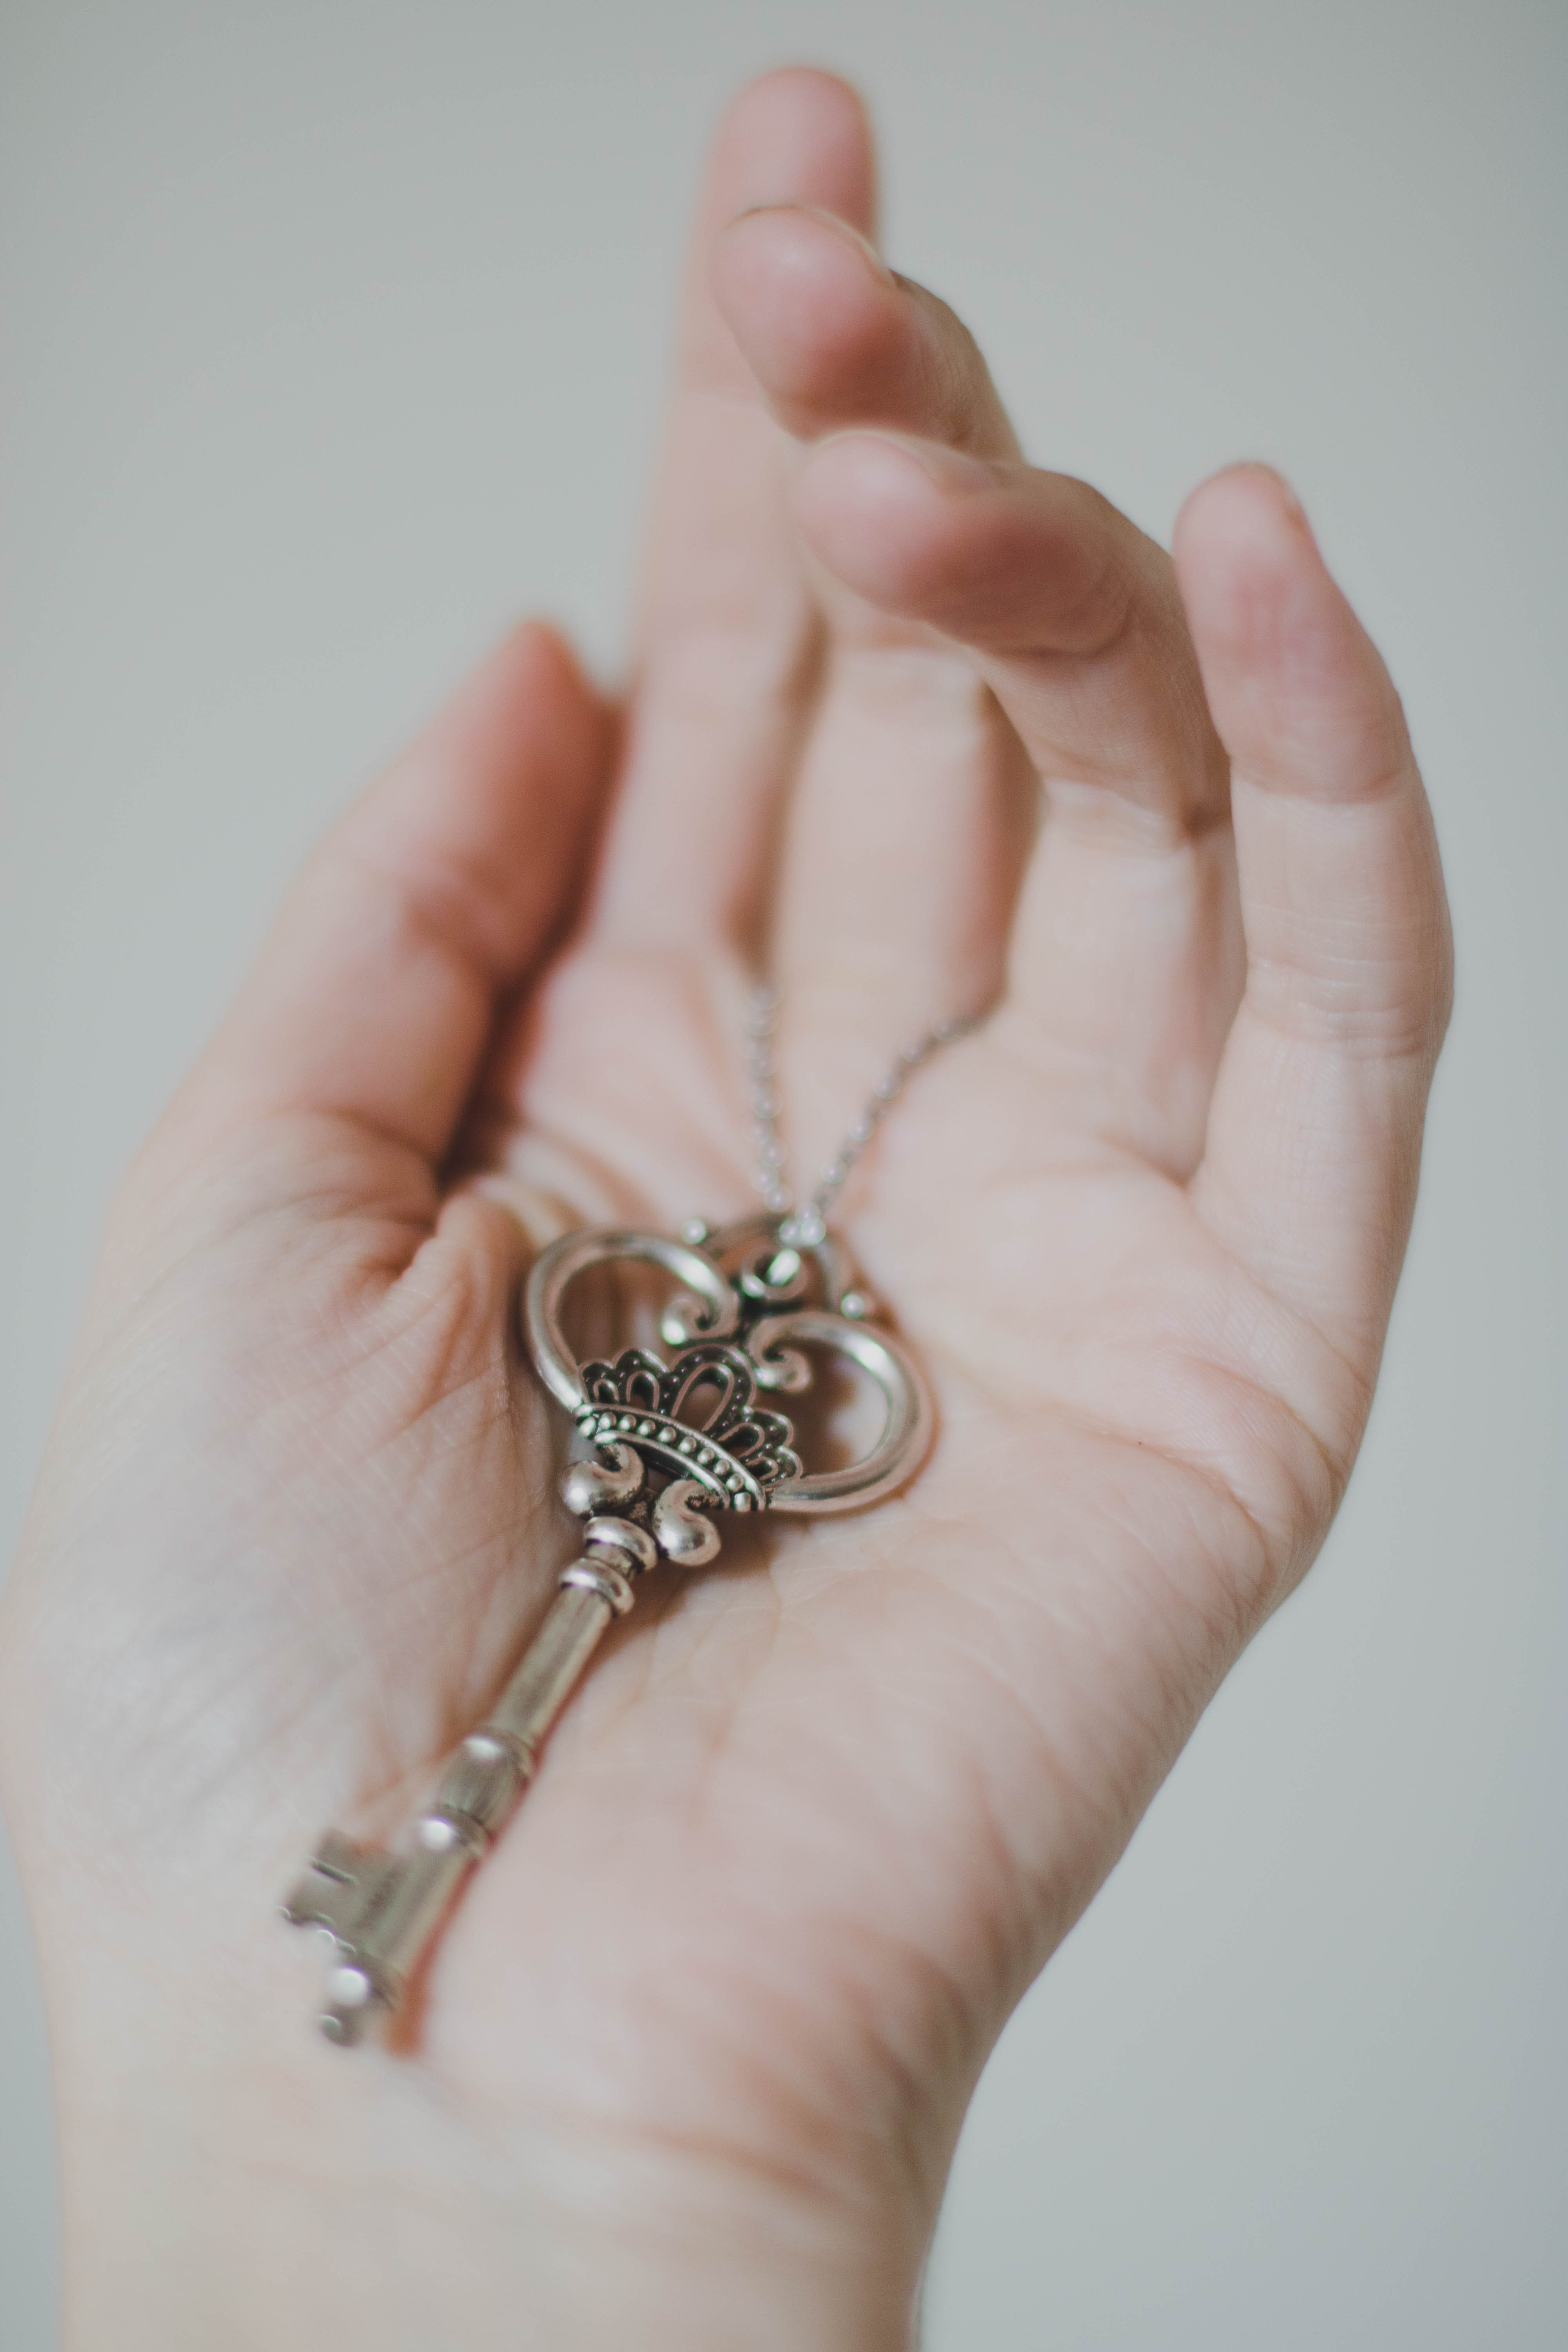 Person Holding Silver-colored Skeleton Key